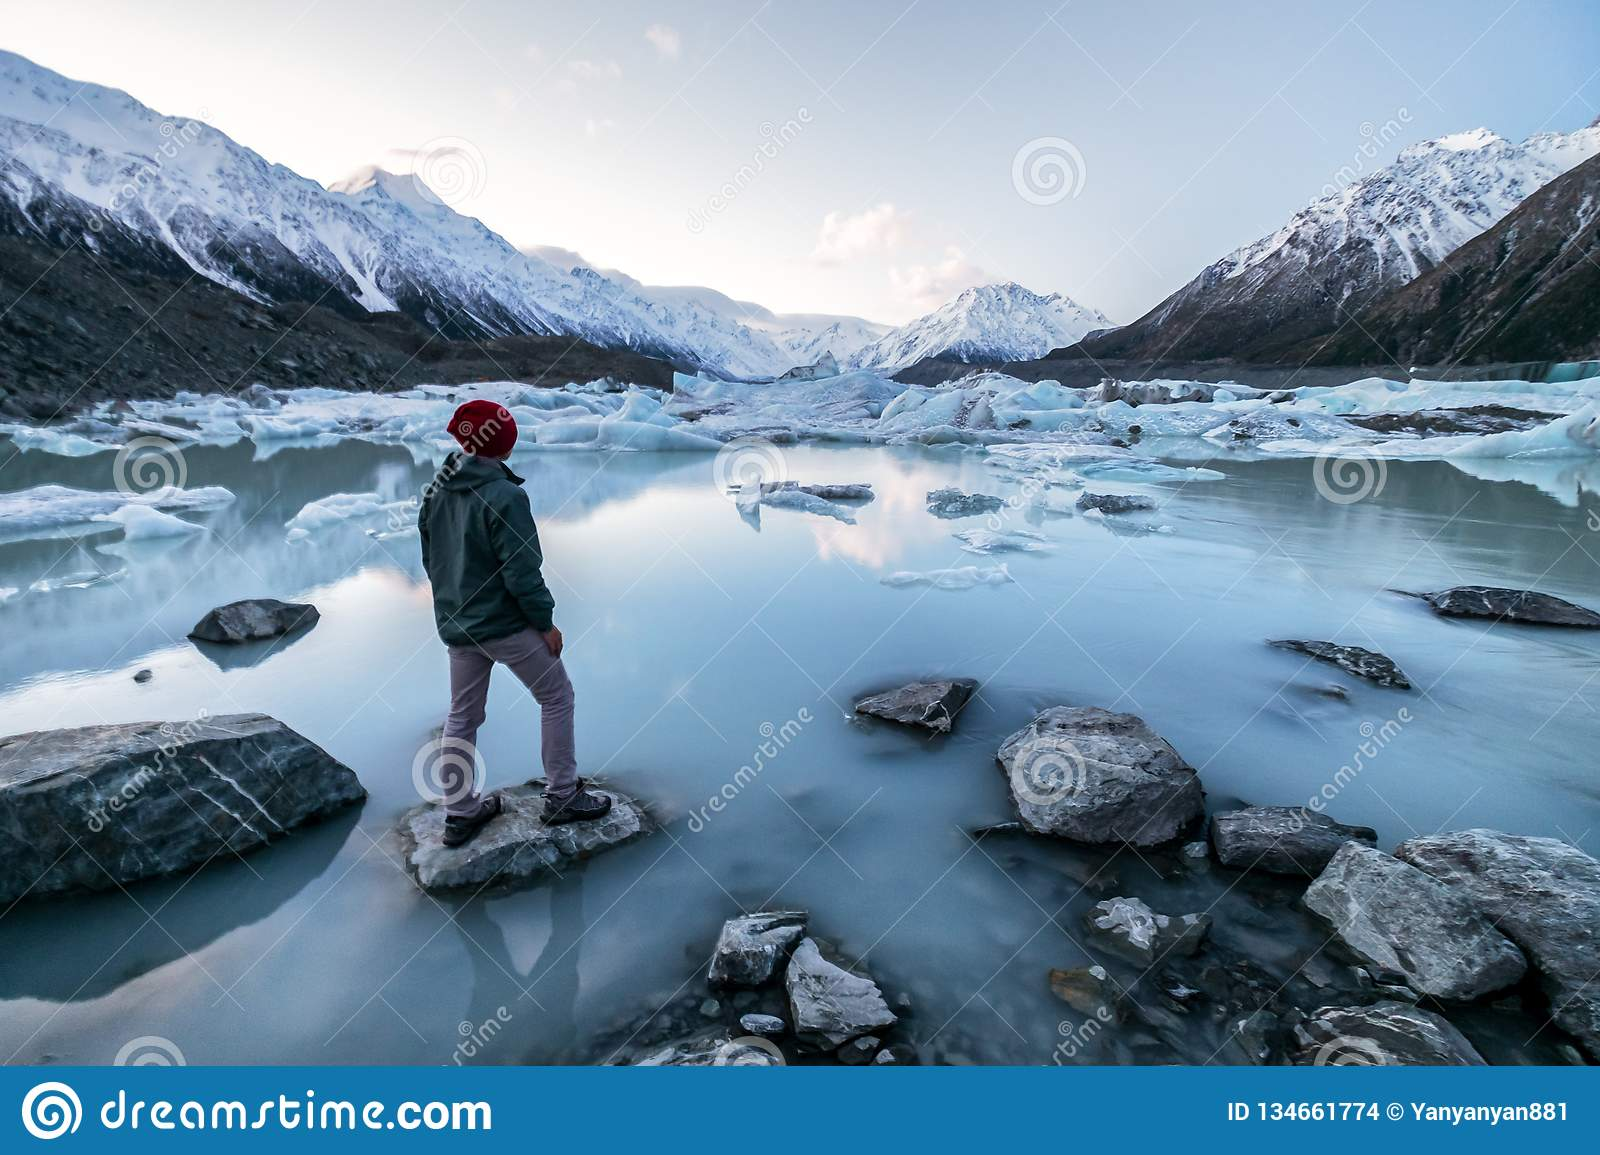 A traveler viewing the amazing icebergs and snow mountains in Tasman Valley, New Zealand